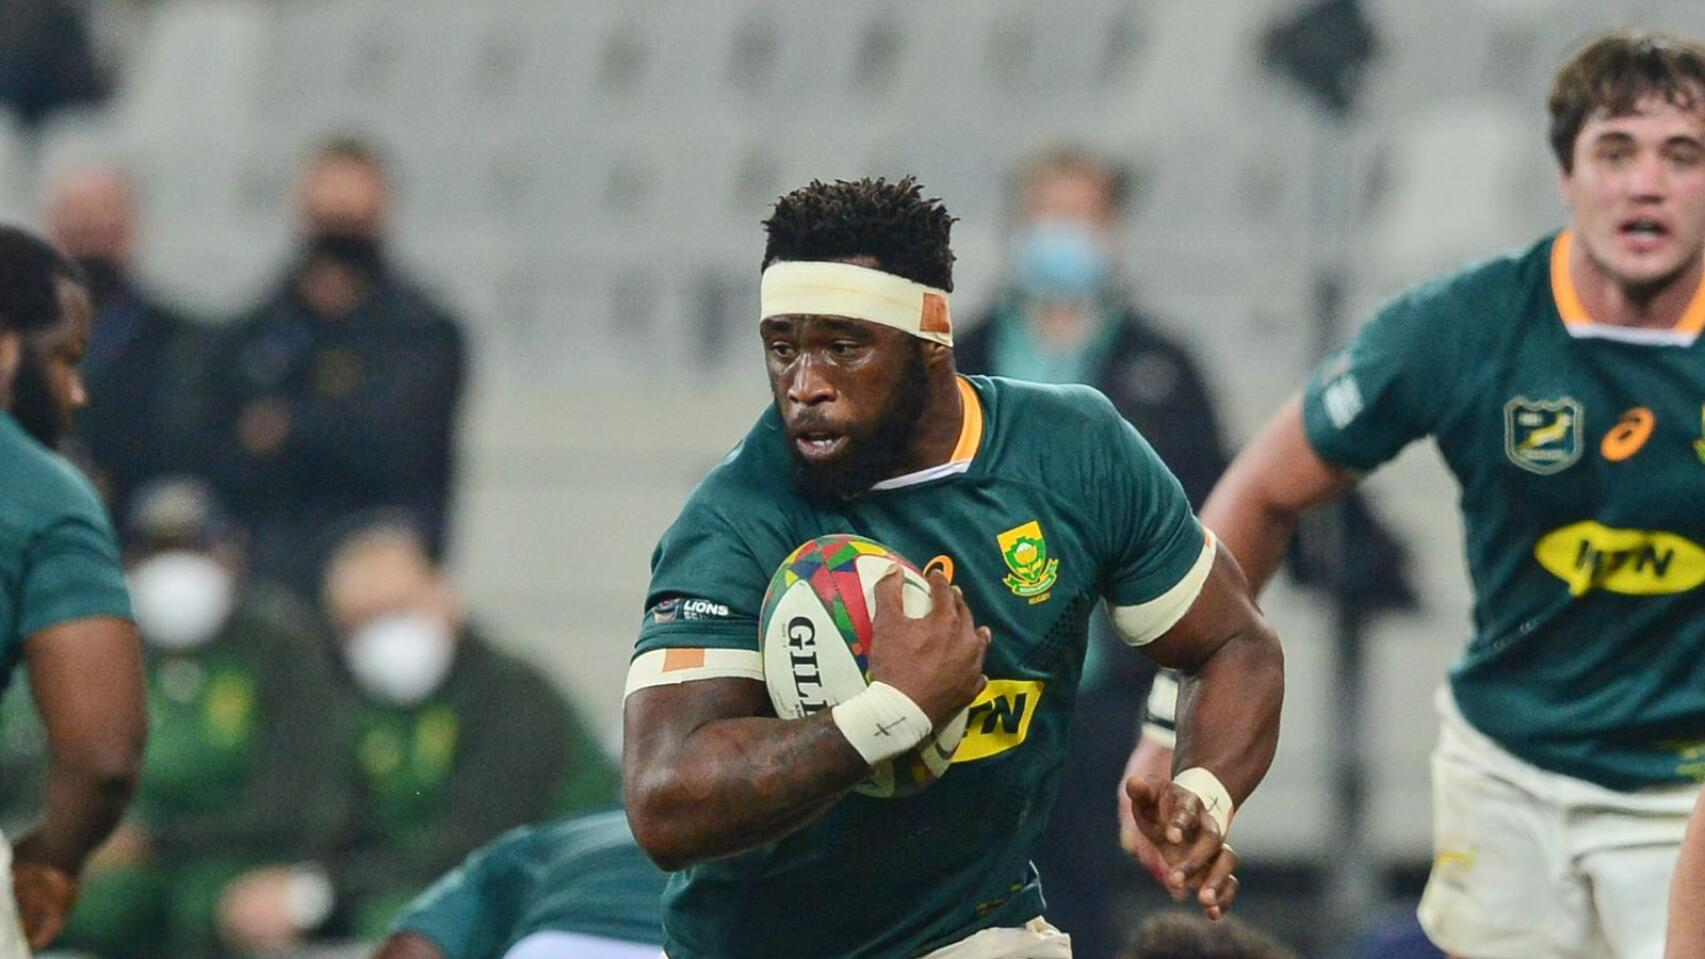 Springbok captain Siya Kolisi carries the ball during the first Test against the British and Irish Lions at Cape Town Stadium last week